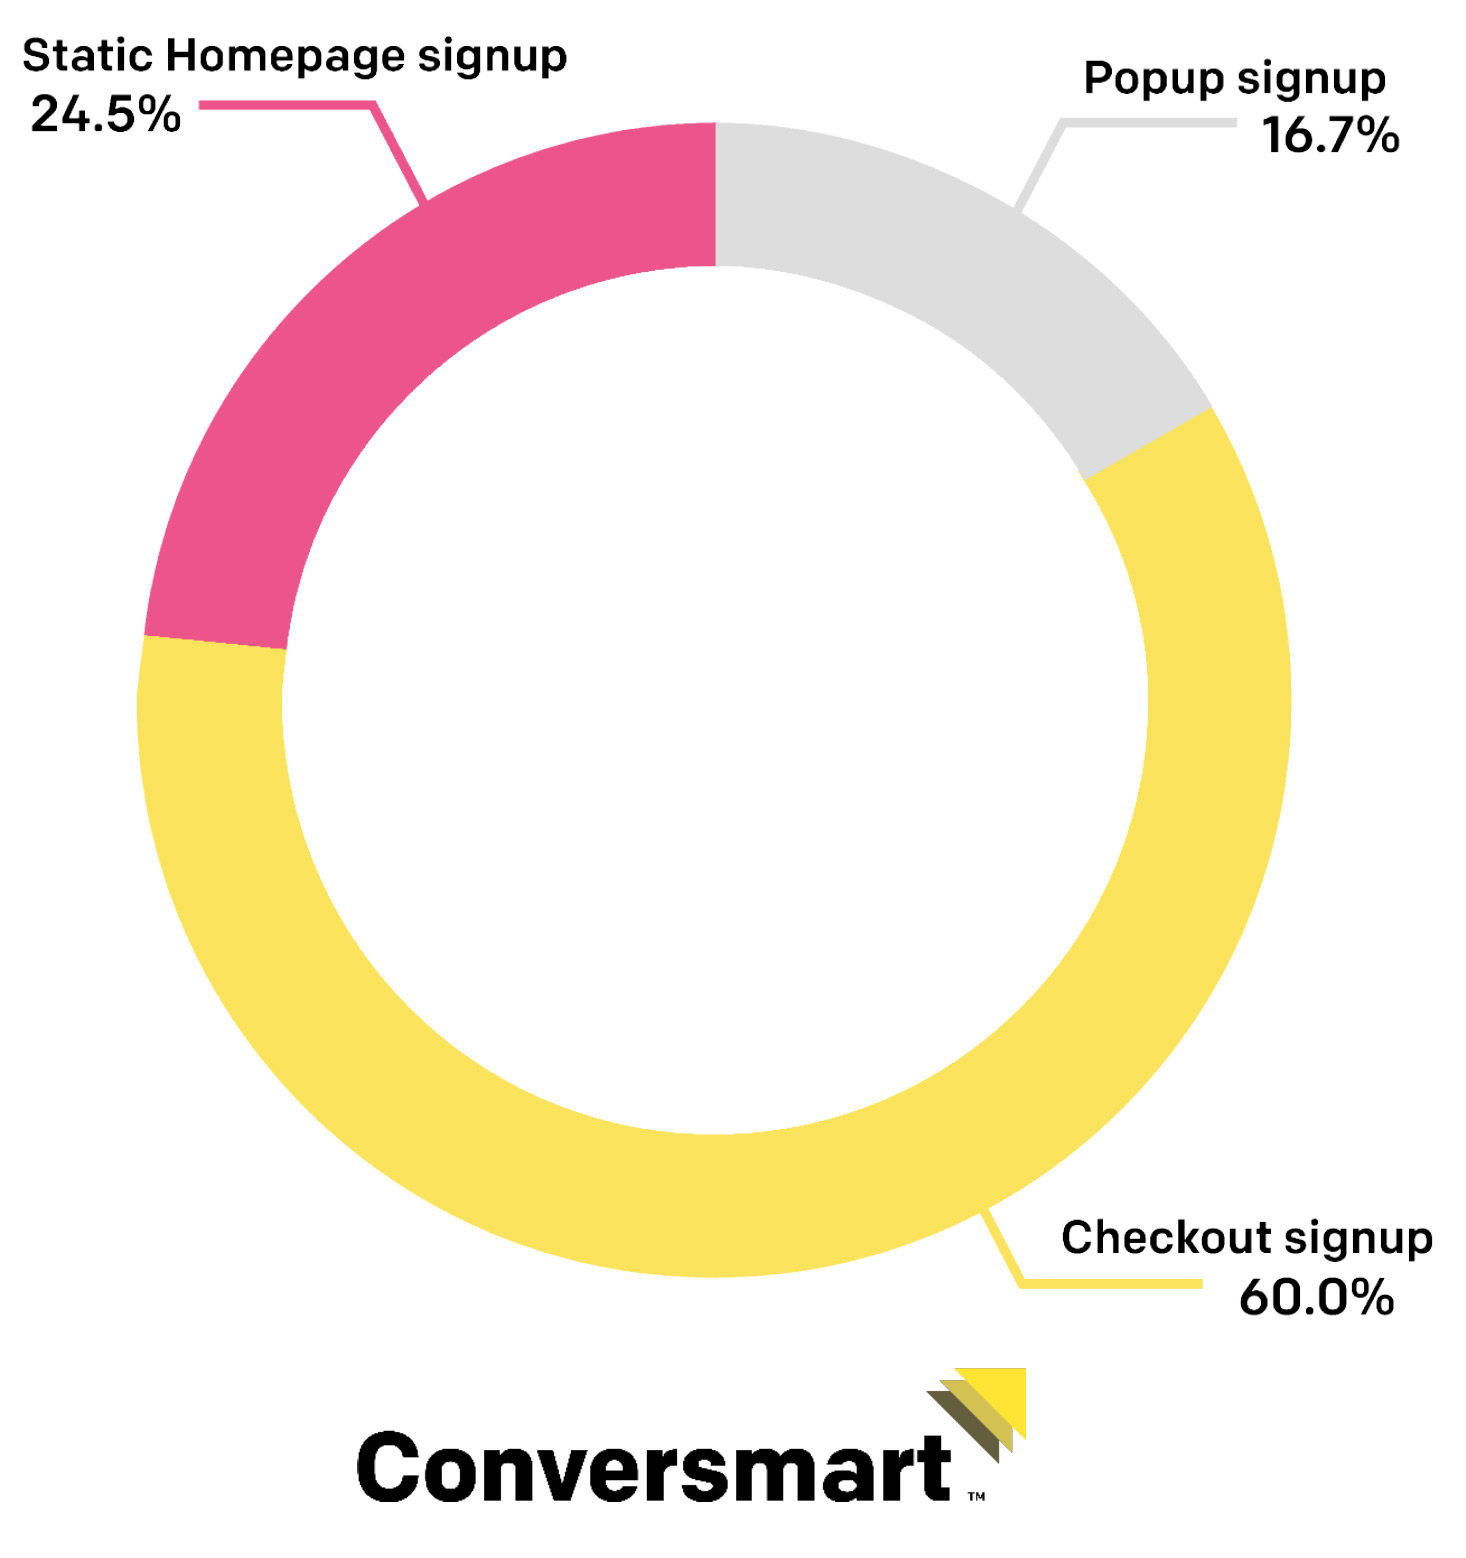 The majority of DTC consumers are signing up during checkout, followed by static homepage signups, and then pop-up forms.